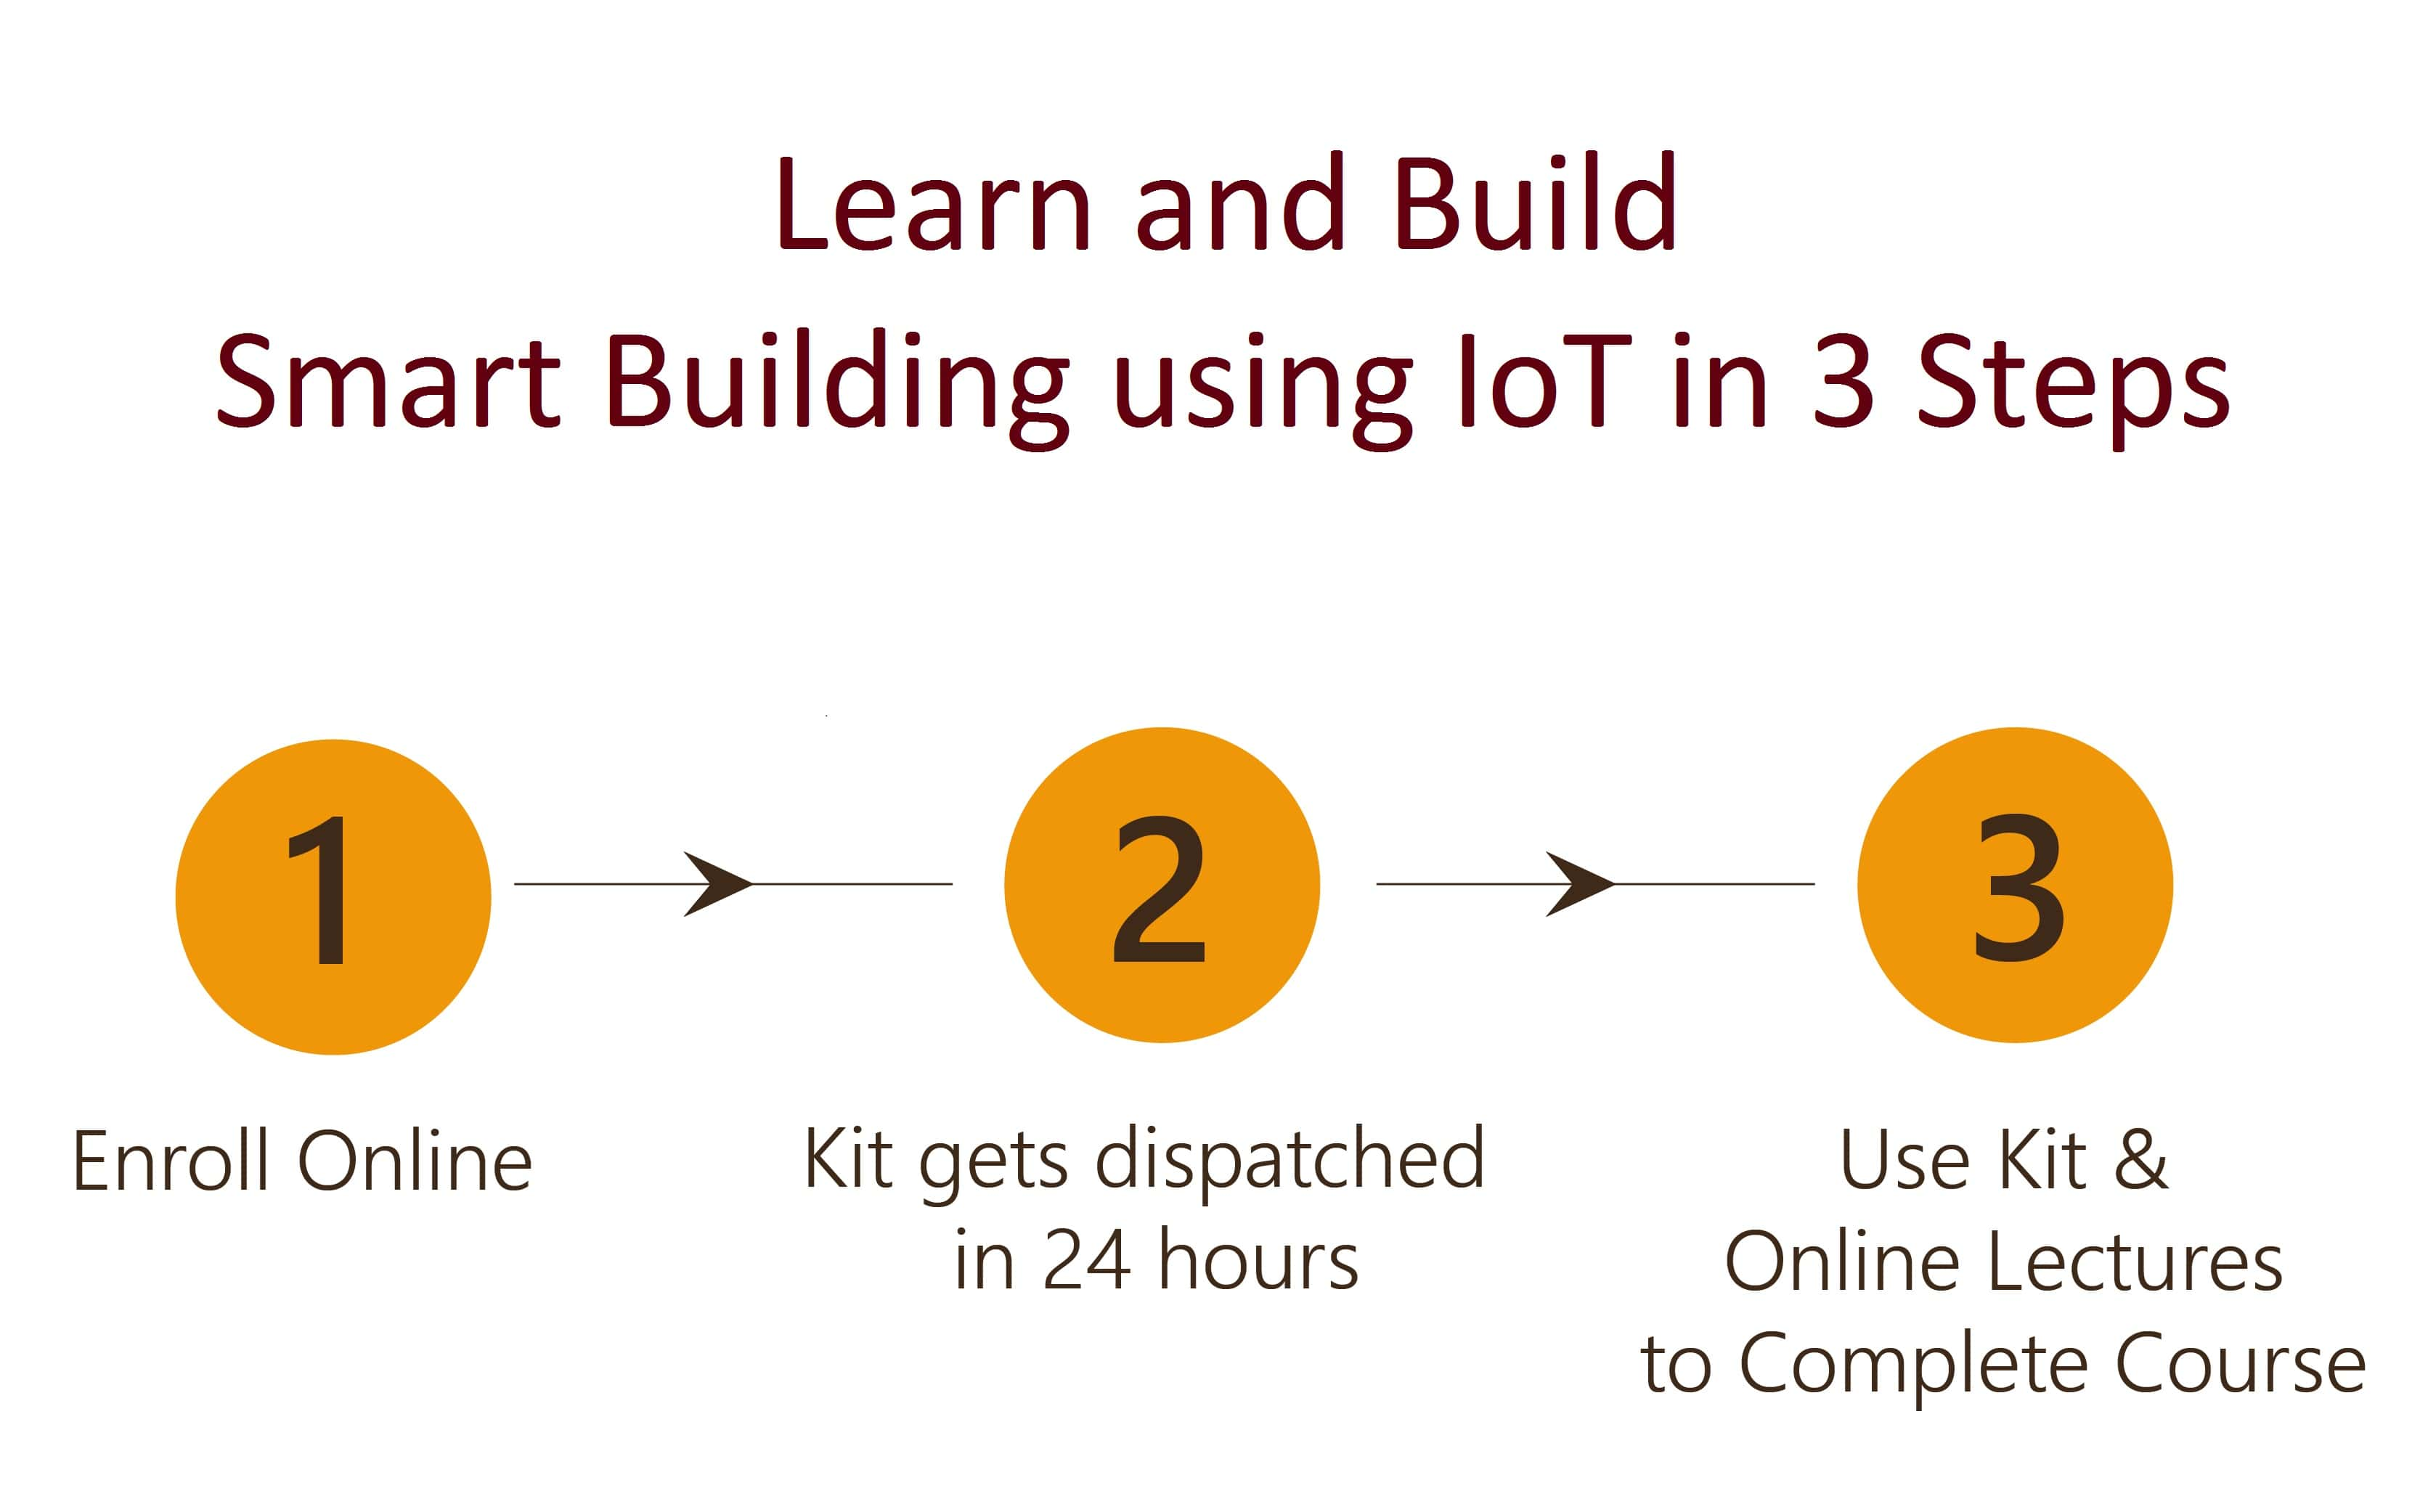 Design and Build Smart Building using IoT Project in 3 Steps